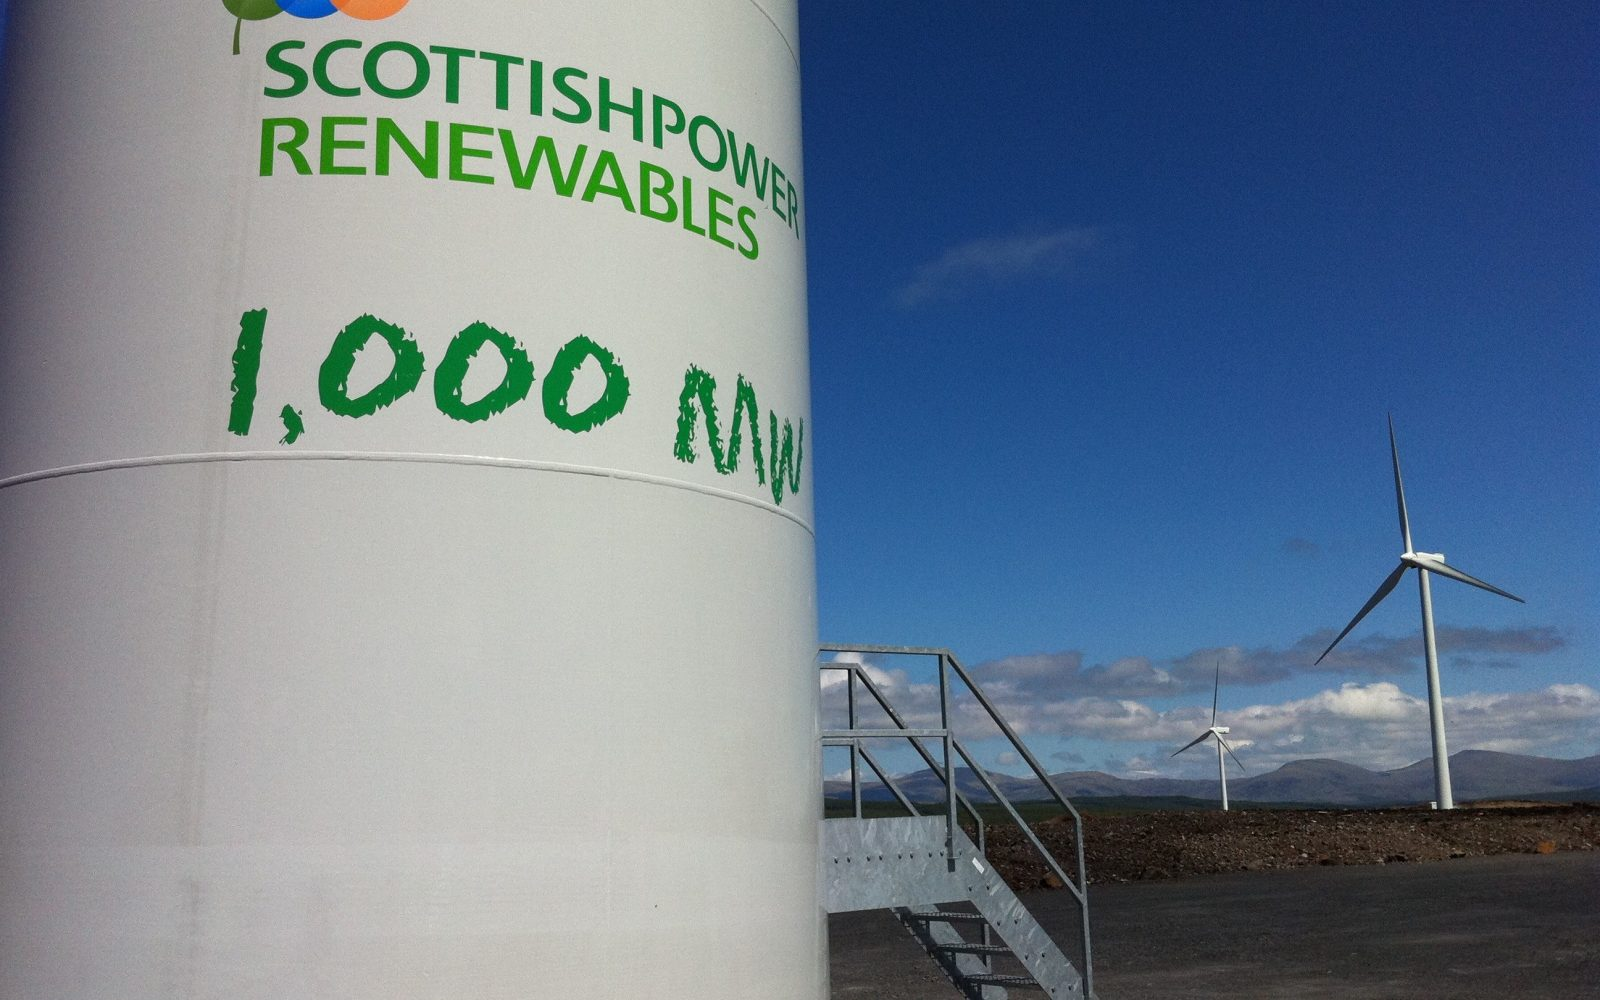 Image: ScottishPower